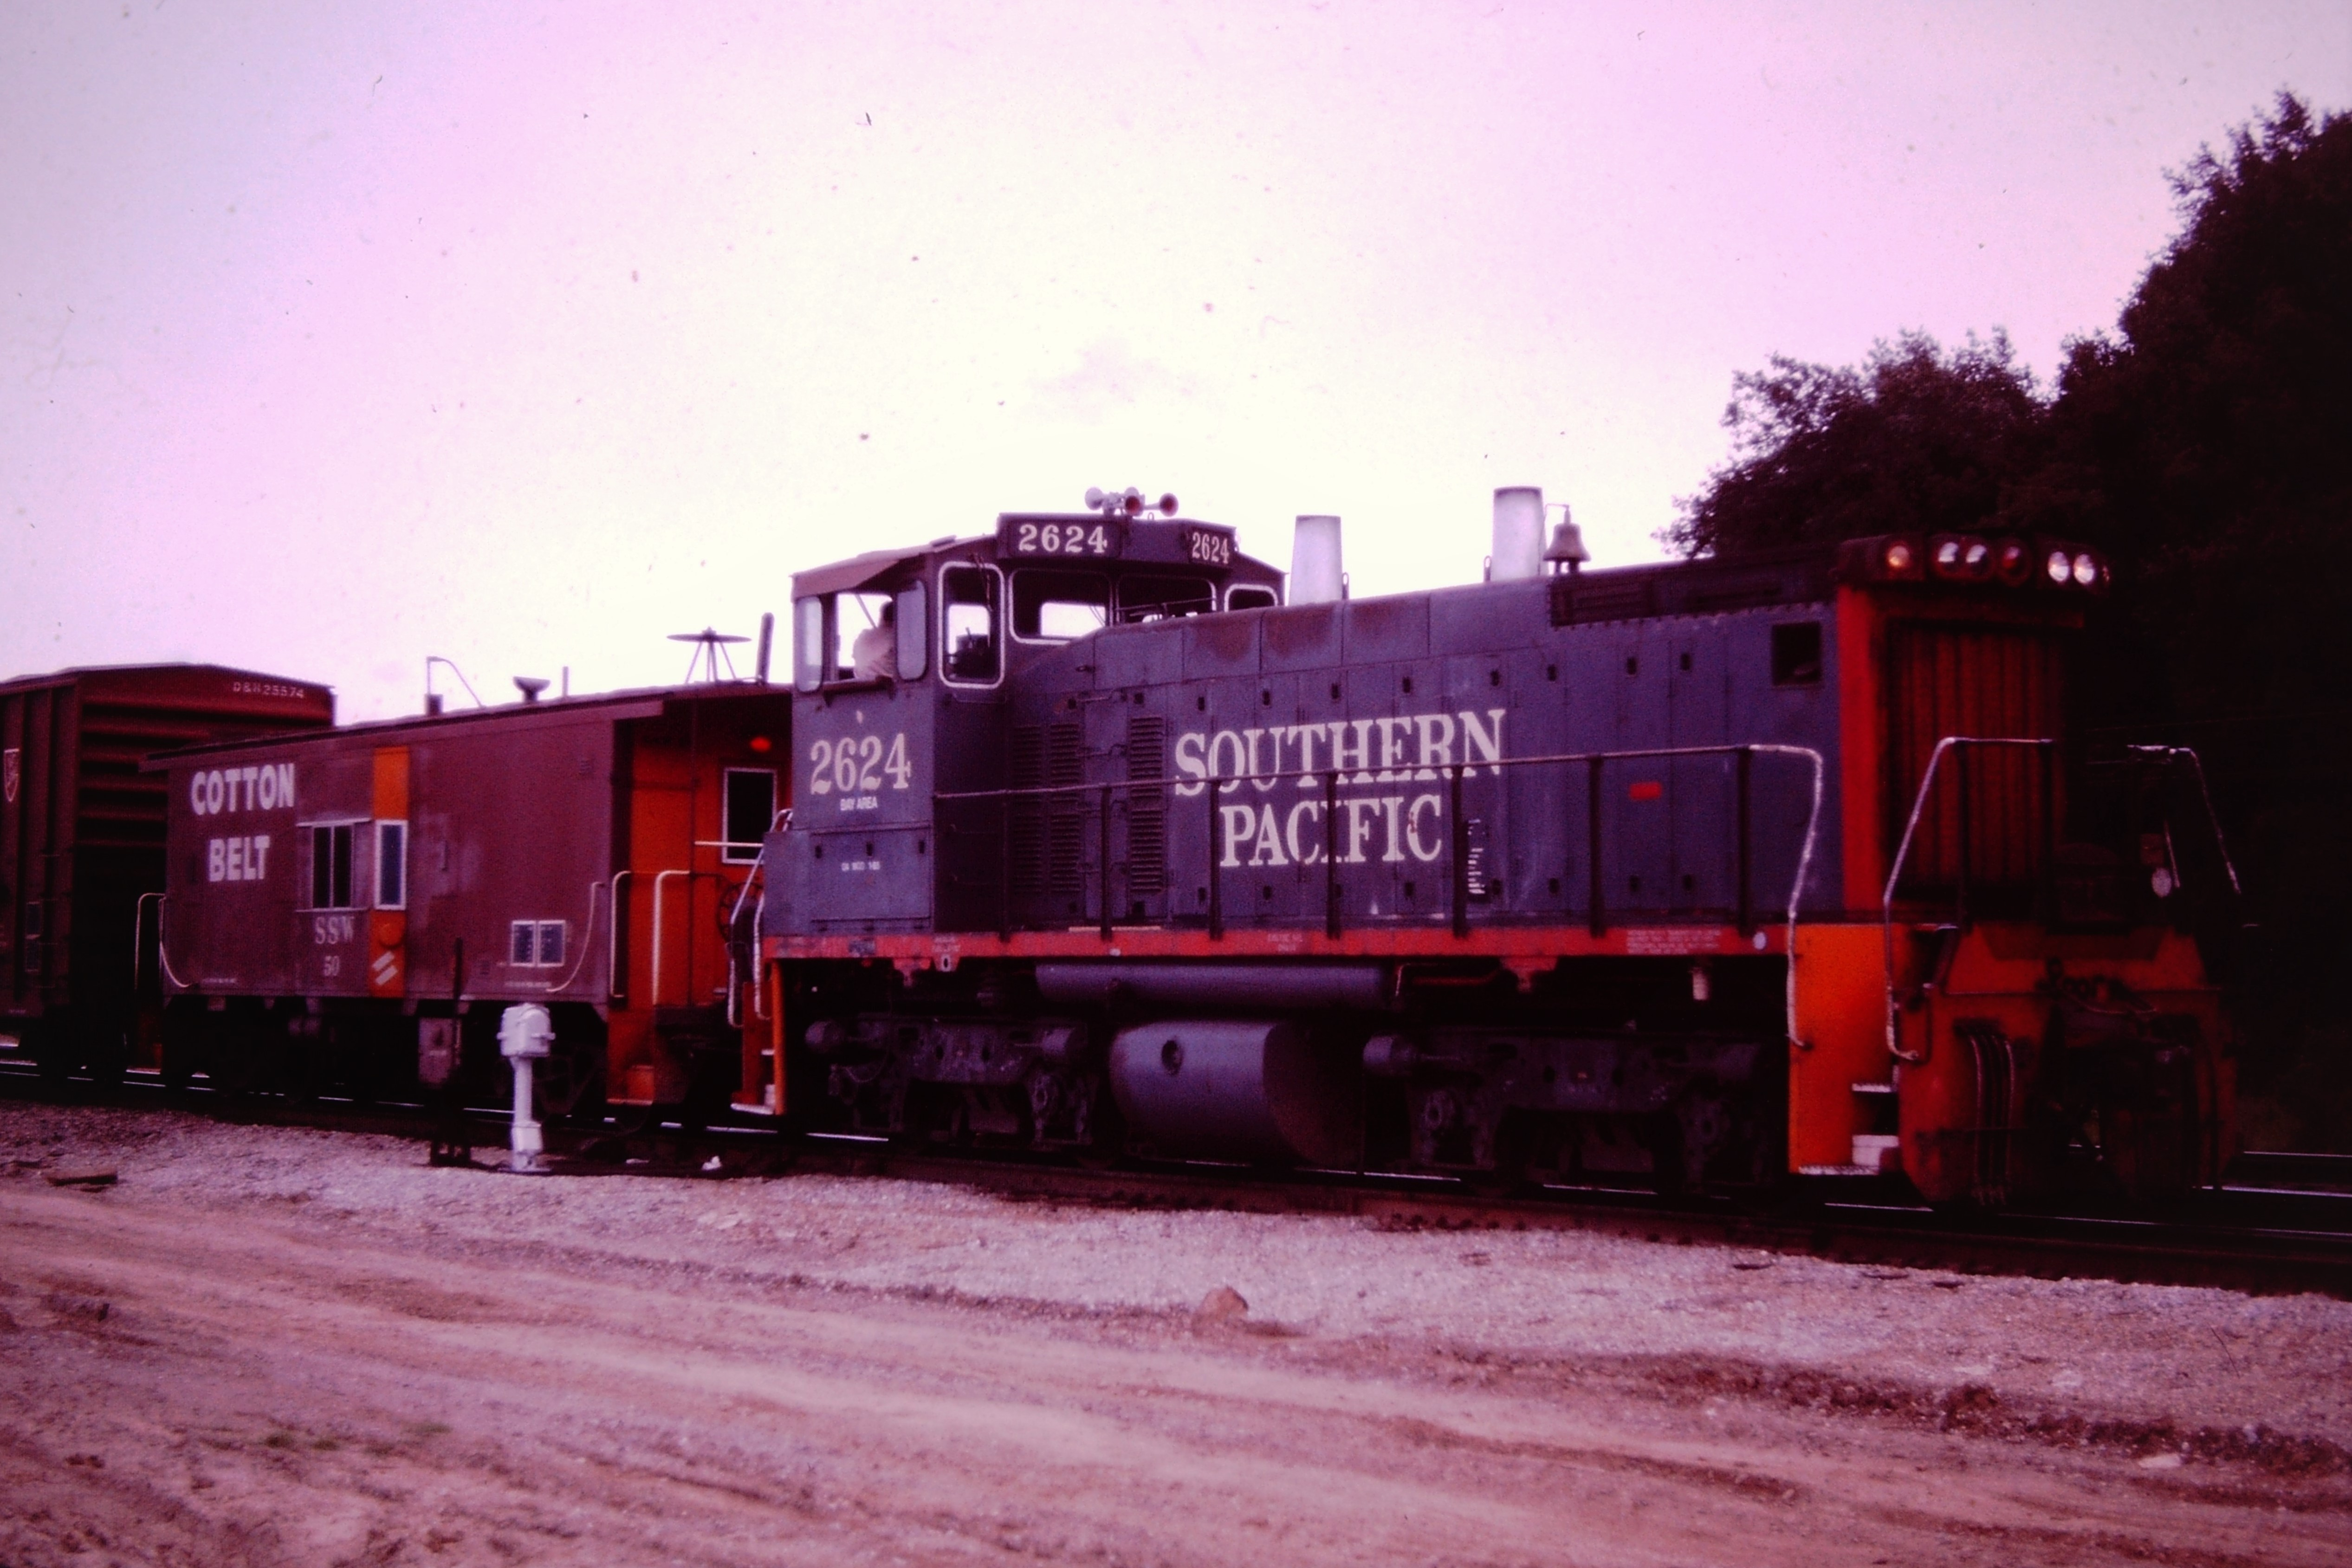 SP 2624 a SW1500 with a Caboose